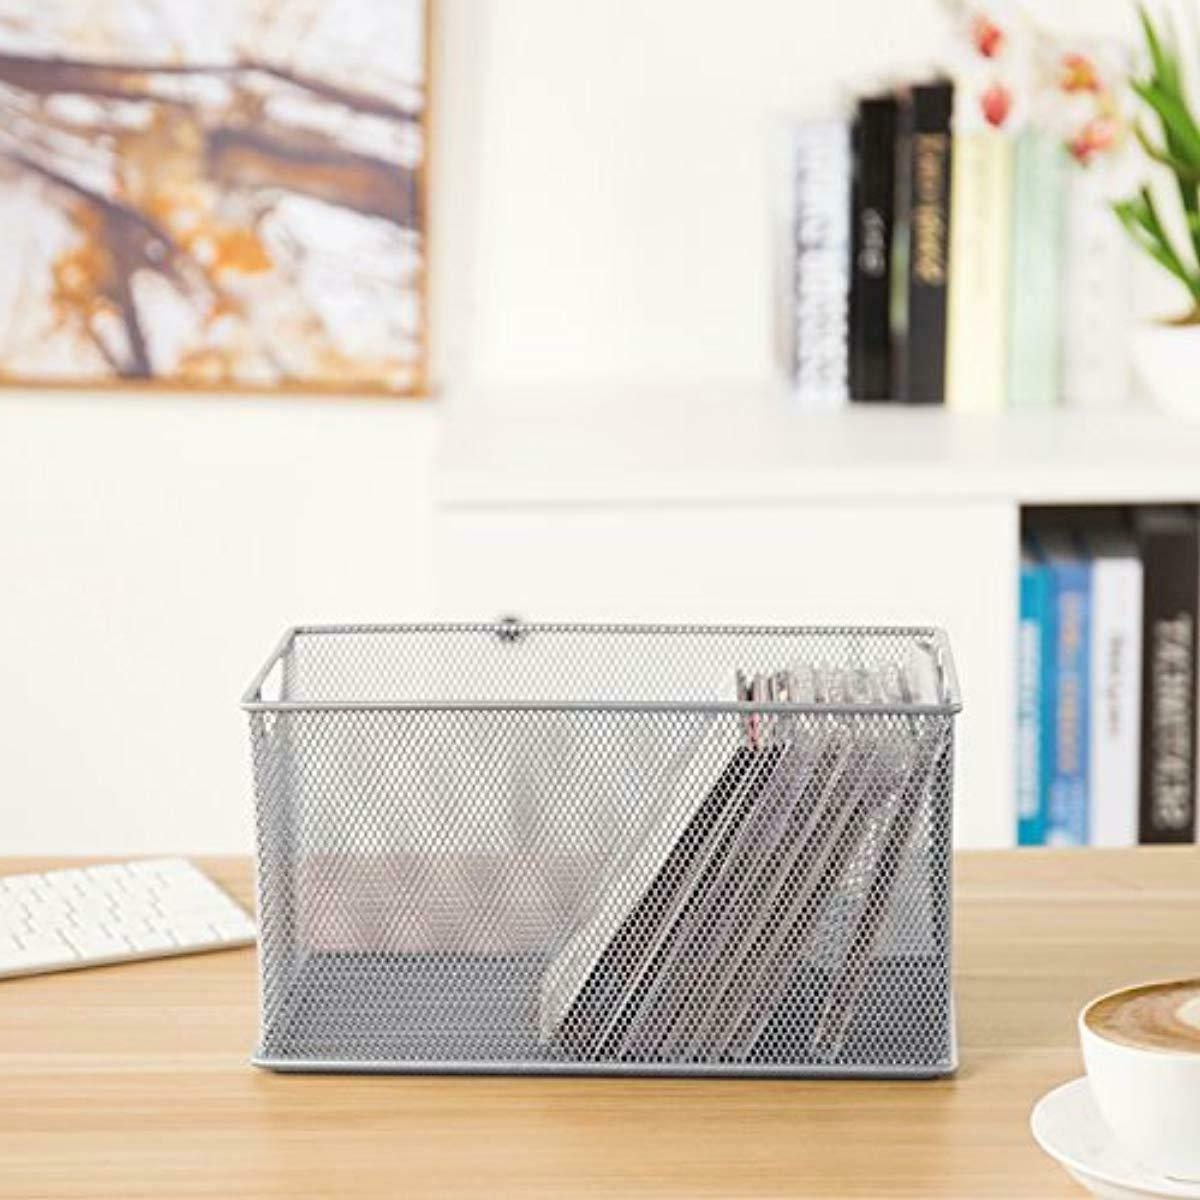 MyGift Mesh CD Holder Organizer, Open Storage